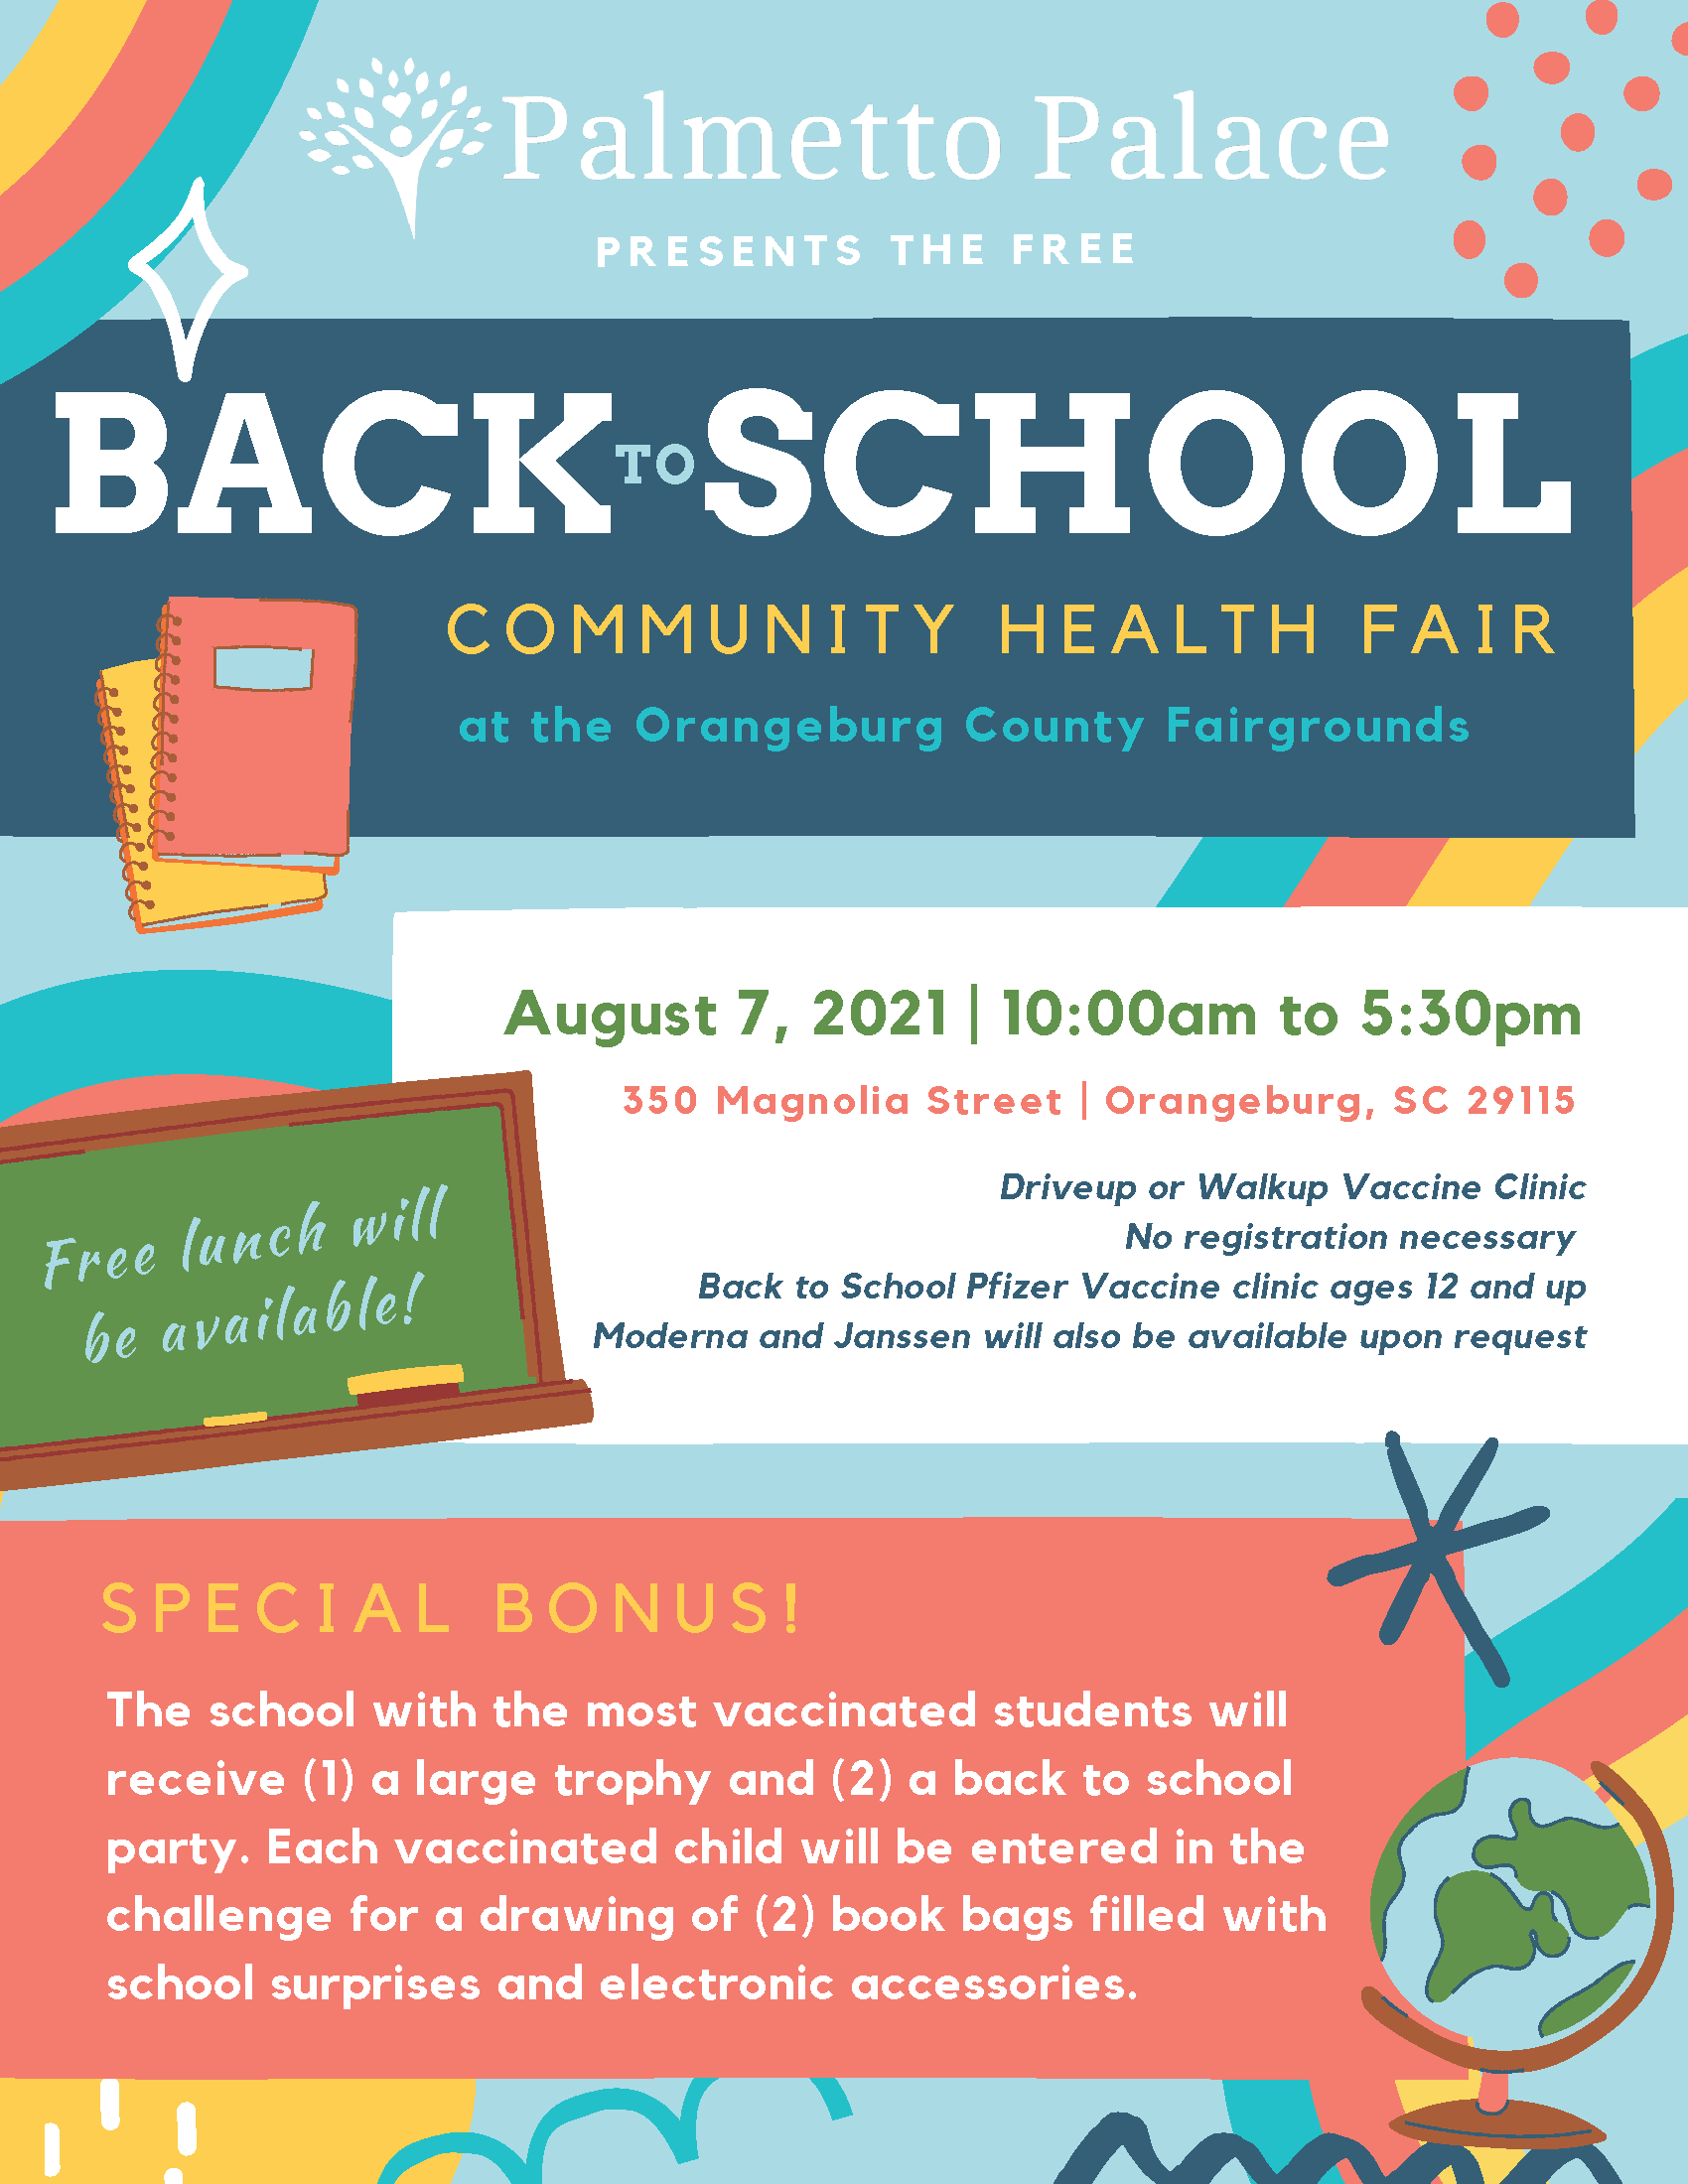 COMMUNITY HEALTH FAIR at the Orangeburg County Fairgrounds. August 7, 2021   10:00am to 5:30pm. 350 Magnolia Street   Orangeburg, SC 29115. Contact the District office for more information.